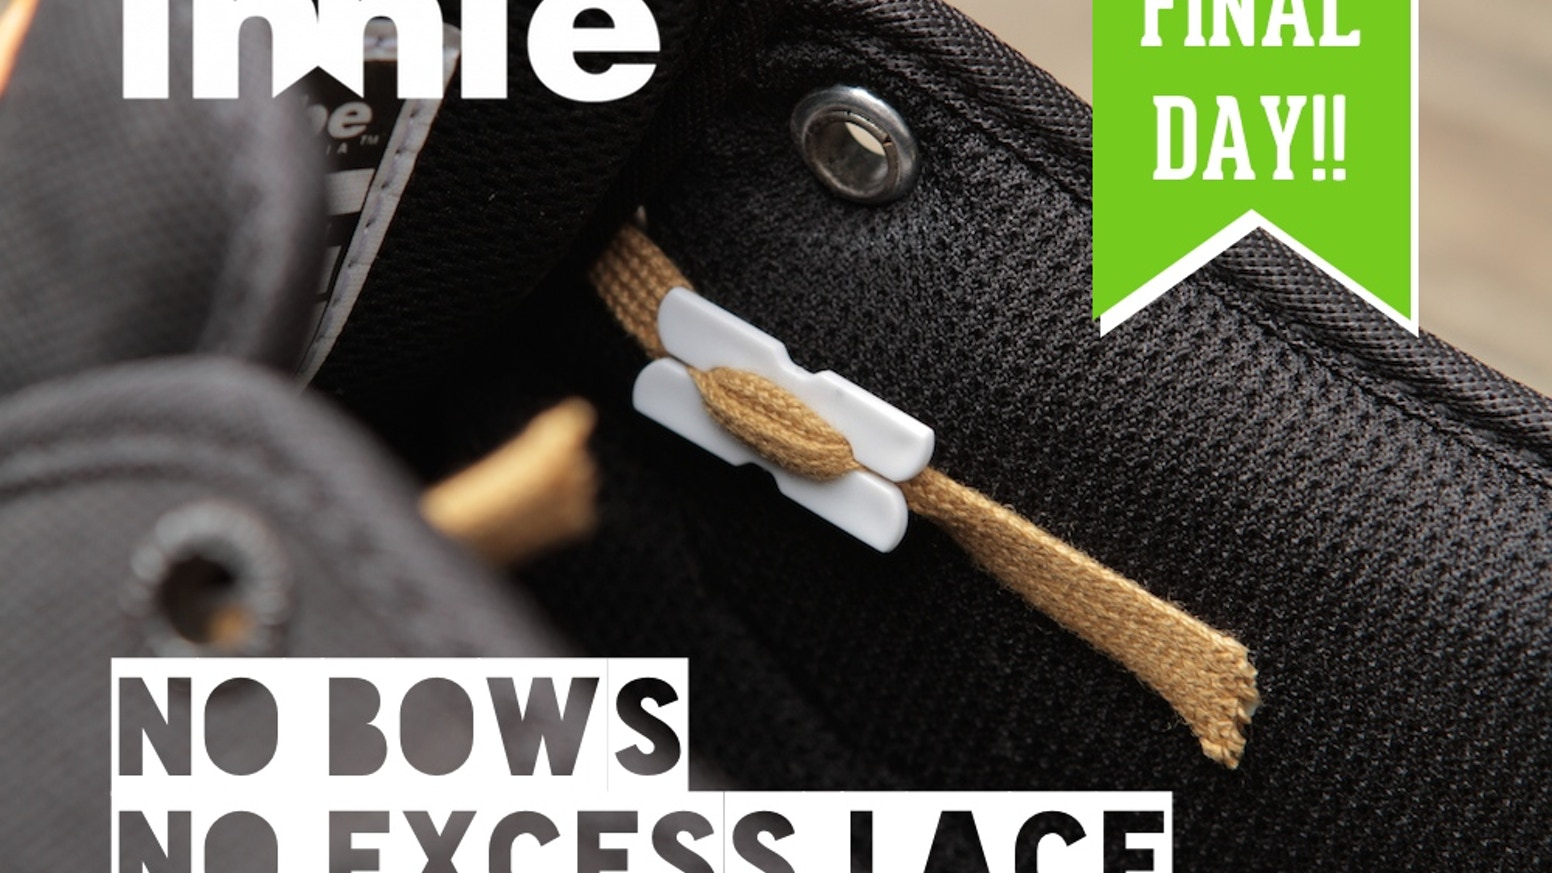 Shoelaces always coming undone is annoying and tucking them into your shoe is uncomfortable. CUT LOOSE to improve style and comfort.